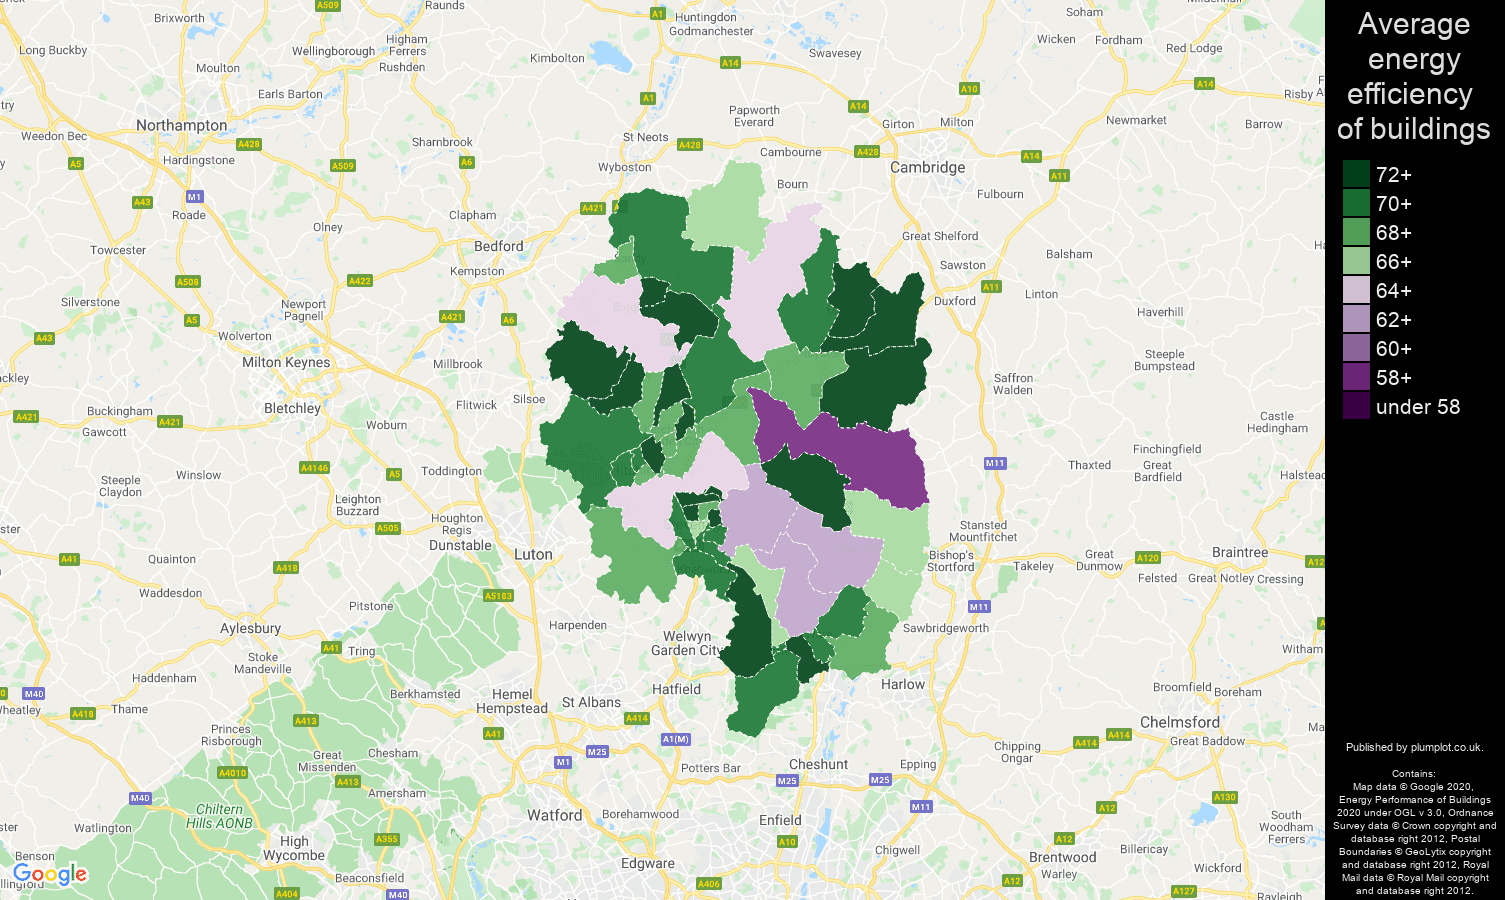 Stevenage map of energy efficiency of flats